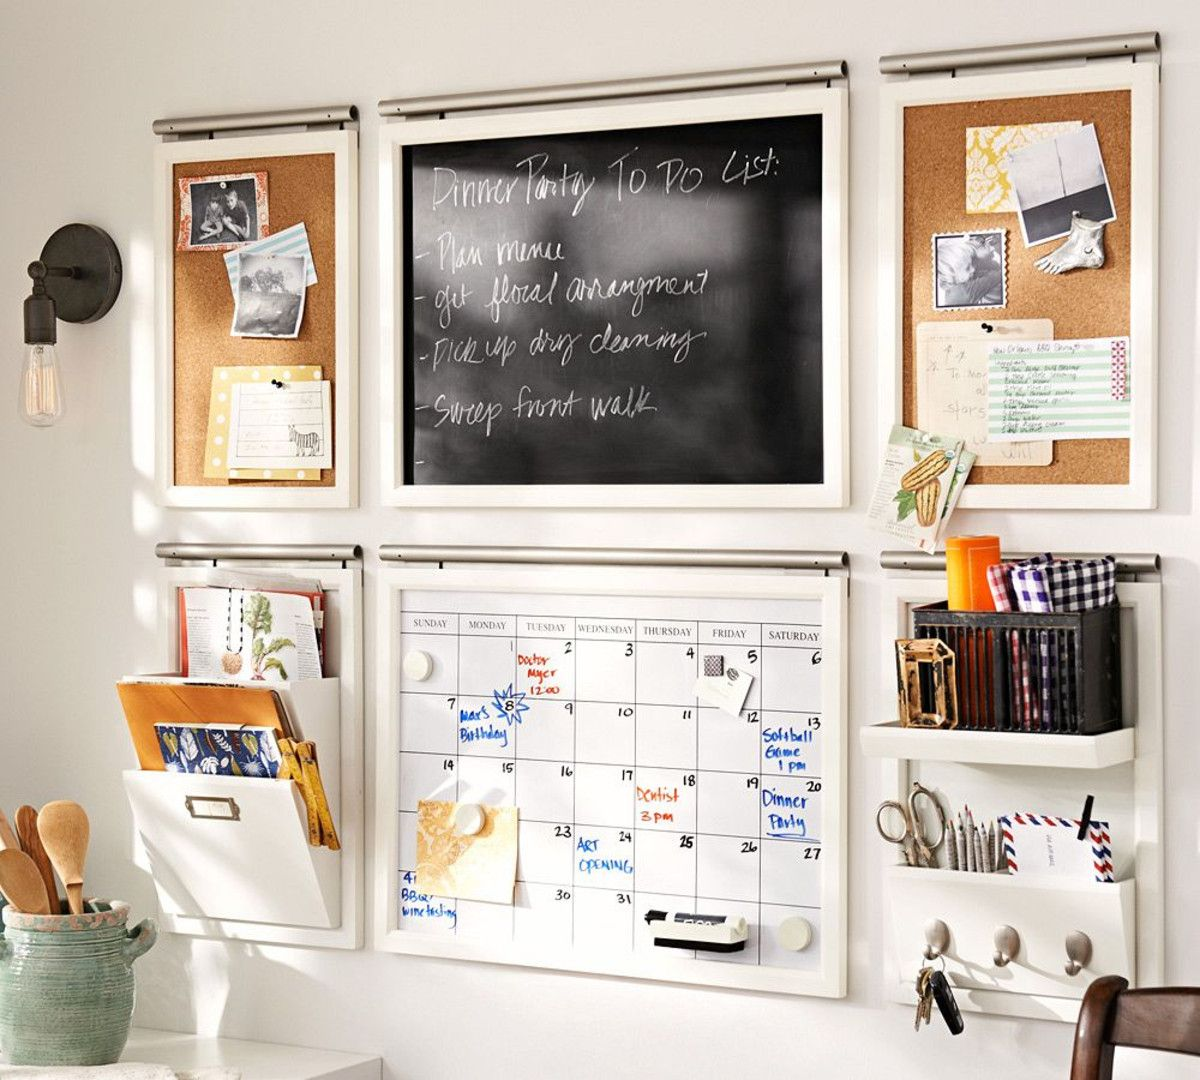 For the front entry way Daily Organisation System from Pottery Barn ...